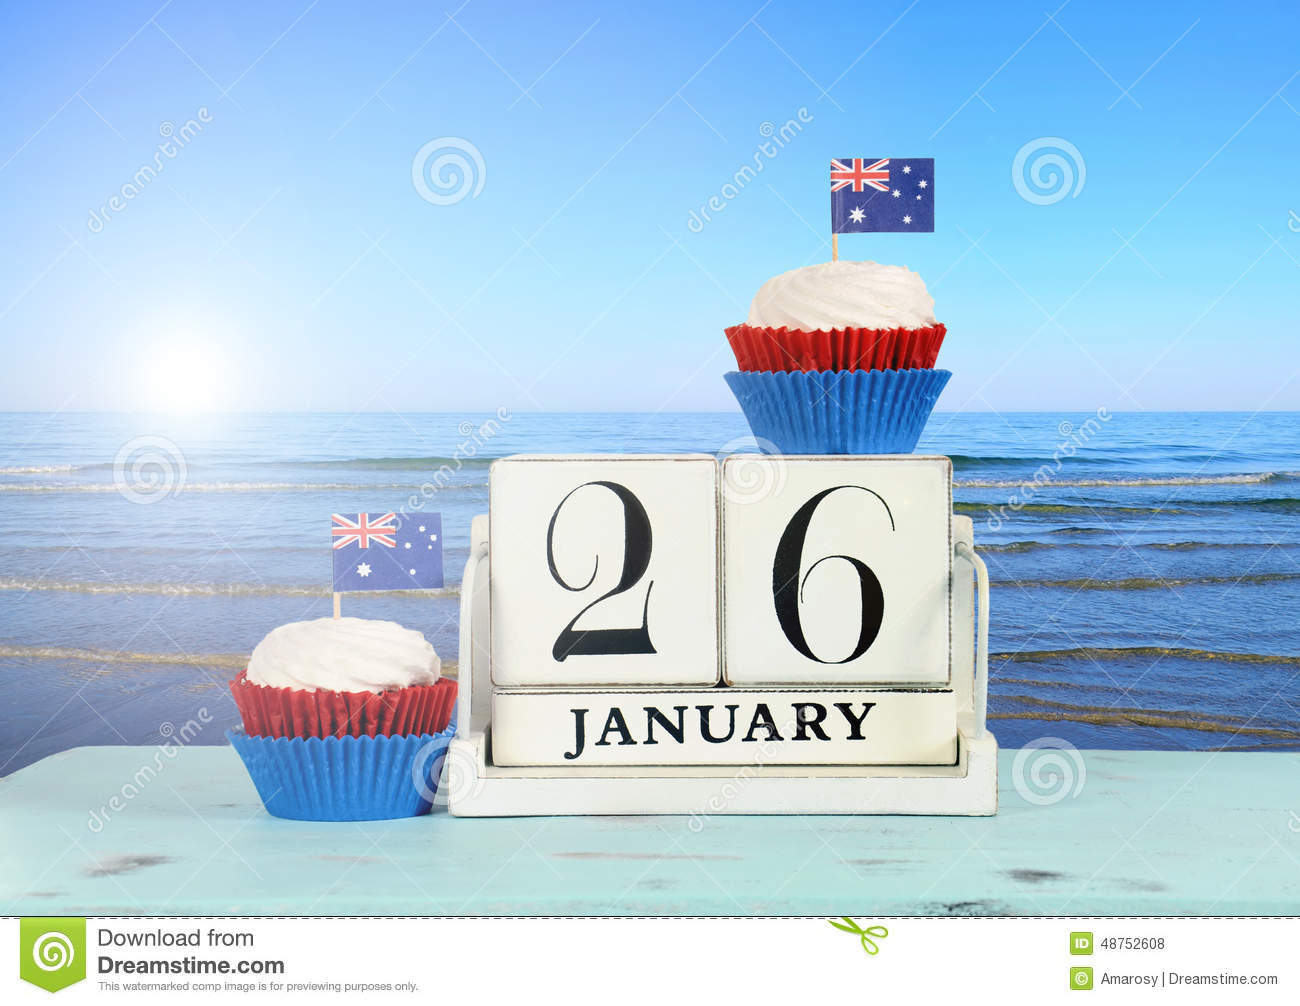 Date and time in Australia